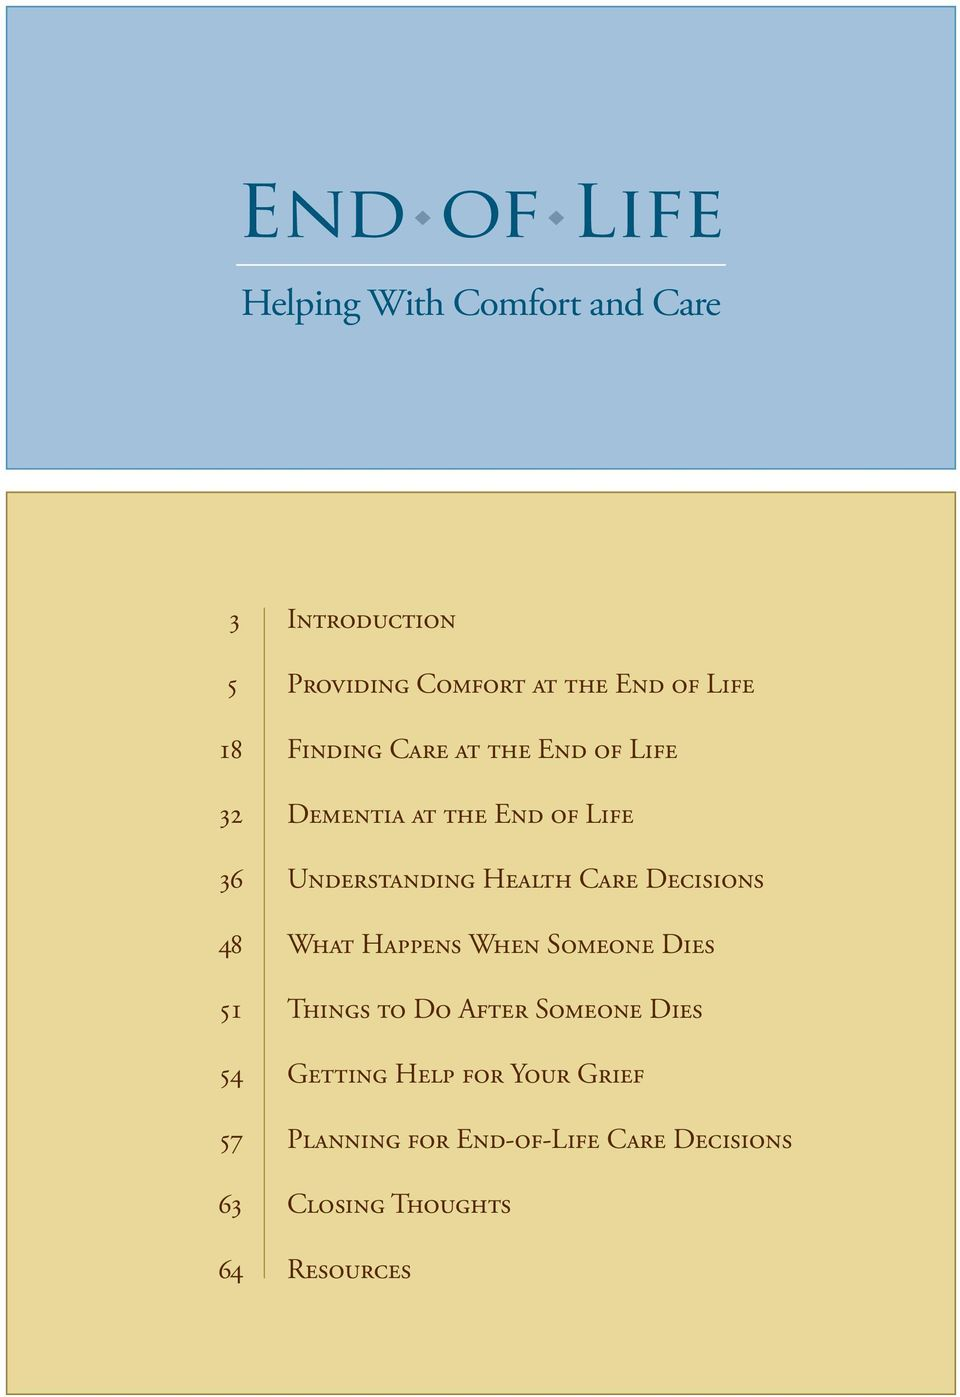 Care Decisions 48 What Happens When Someone Dies 51 Things to Do After Someone Dies 54 Getting